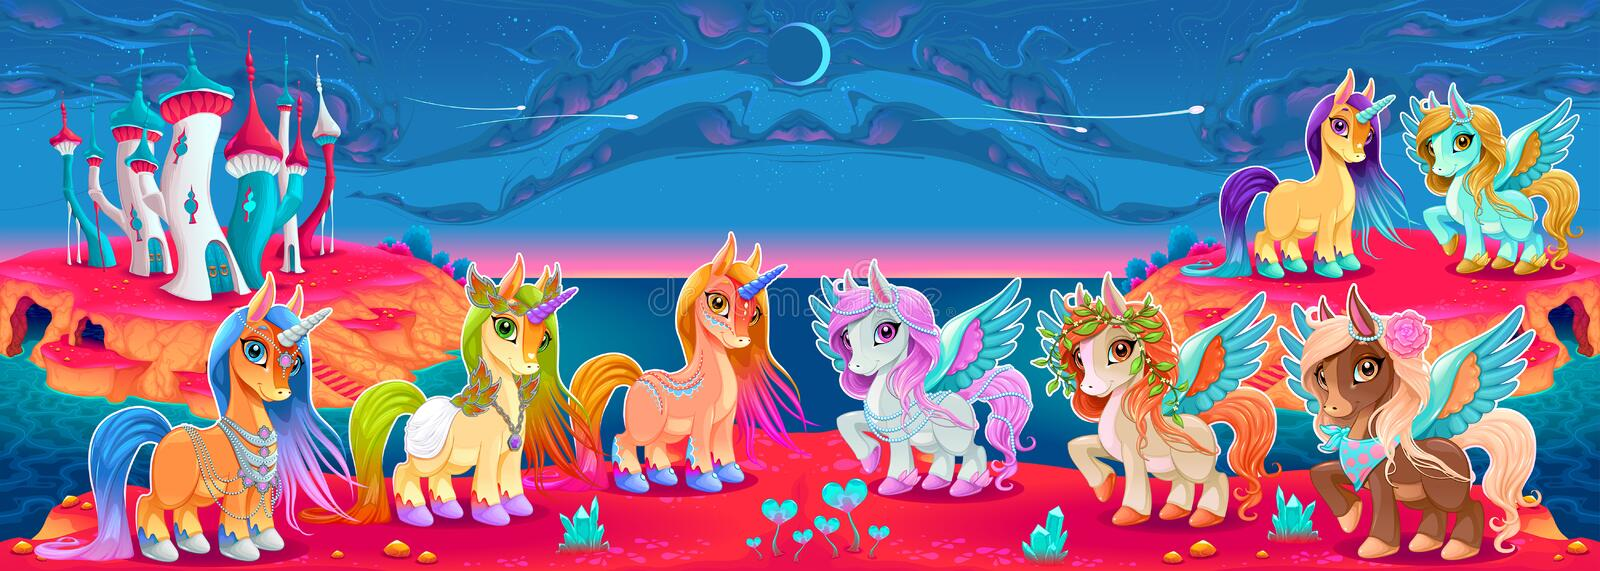 Groups of unicorns and pegasus in a fantasy landscape. Vector cartoon illustration royalty free illustration